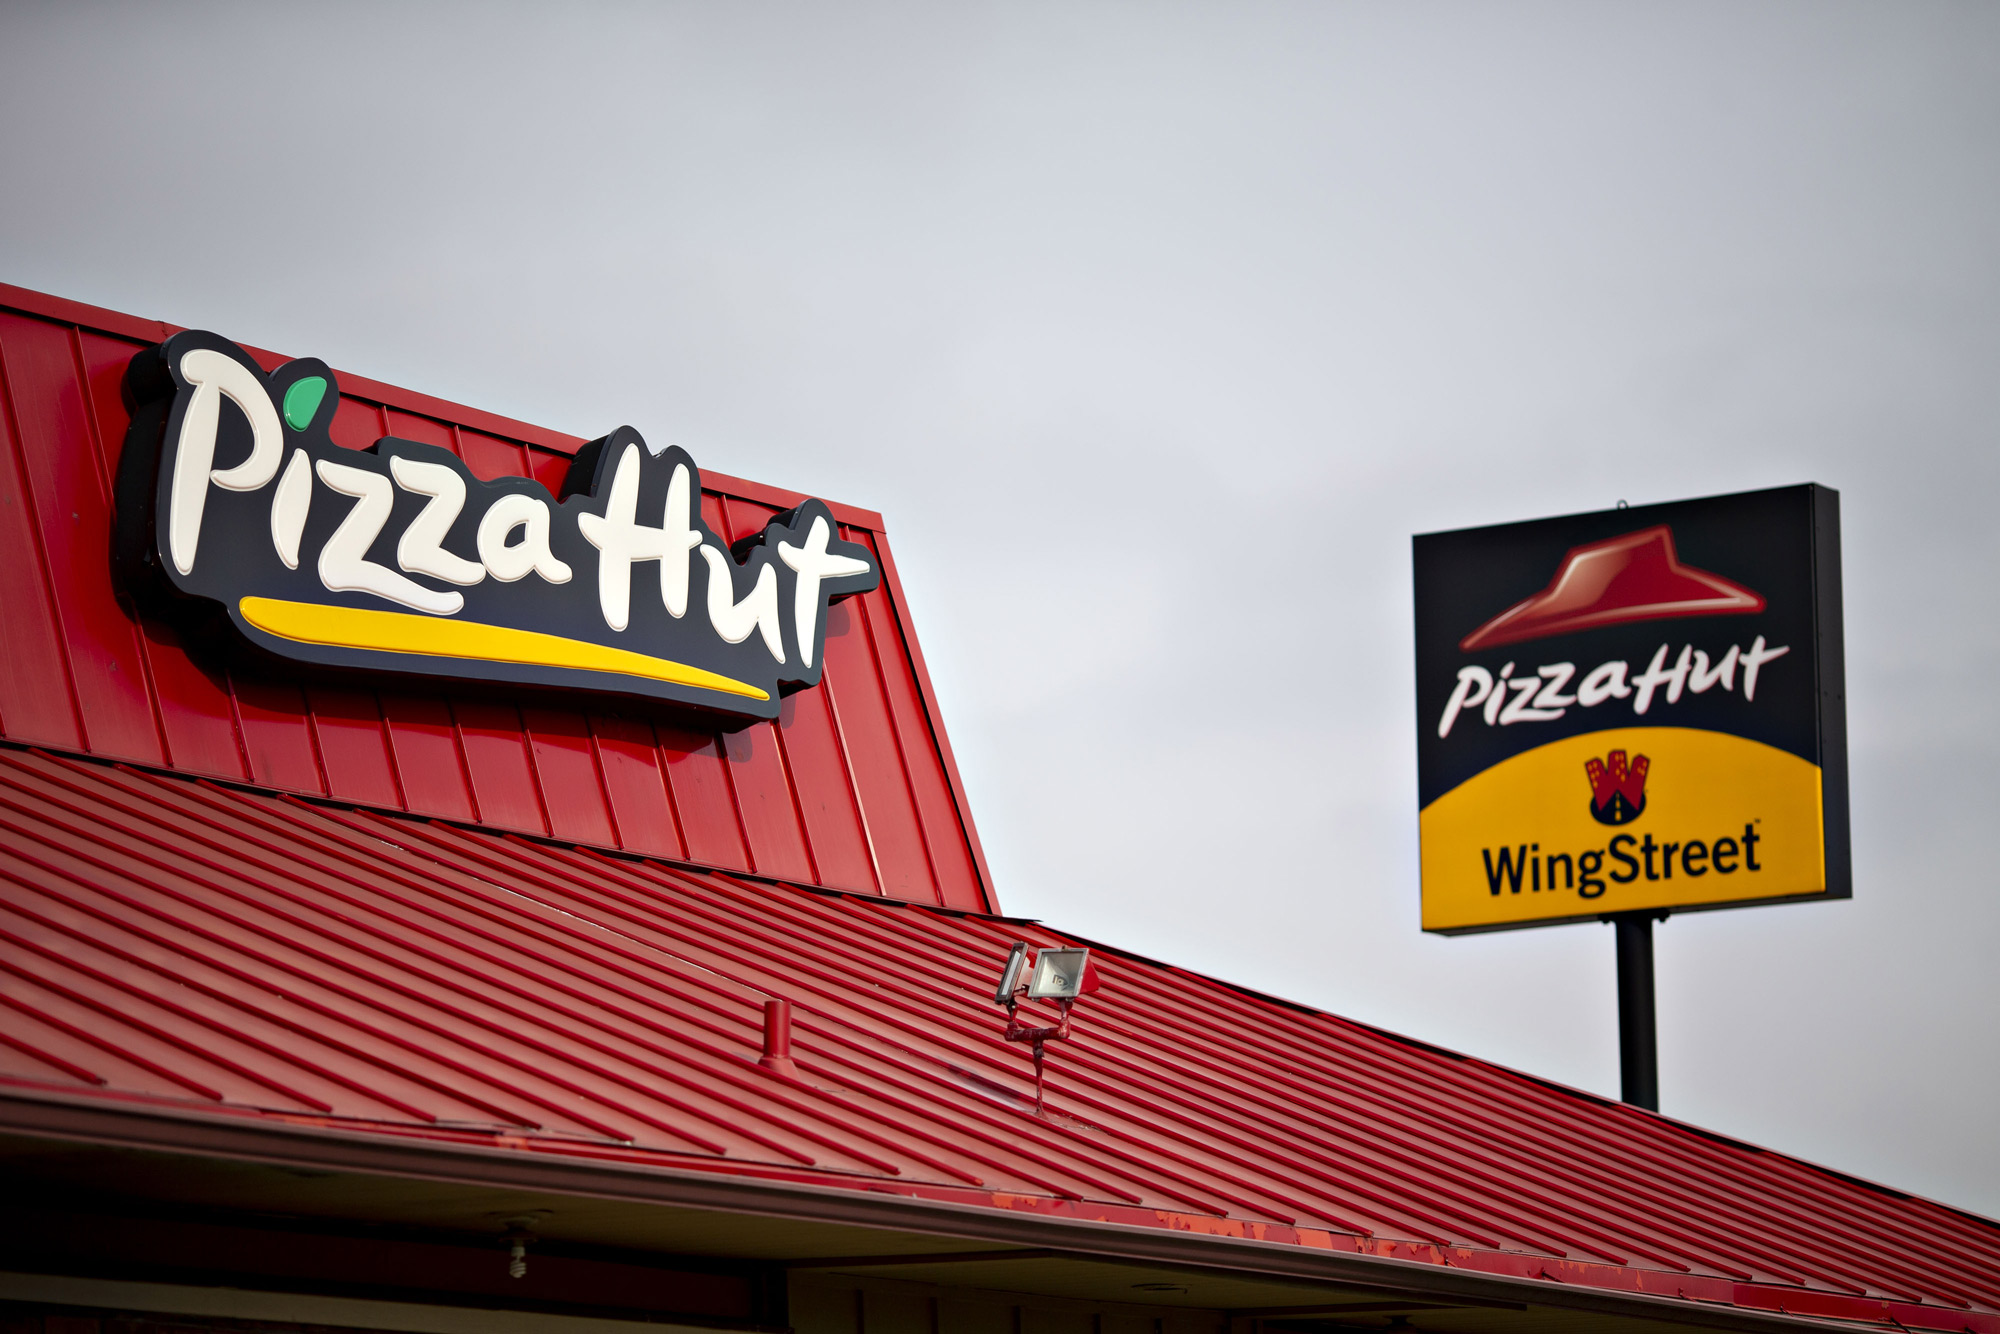 Signage is displayed outside a Yum! Brands Inc. Pizza Hut restaurant on February 5, 2019 in Illinois.